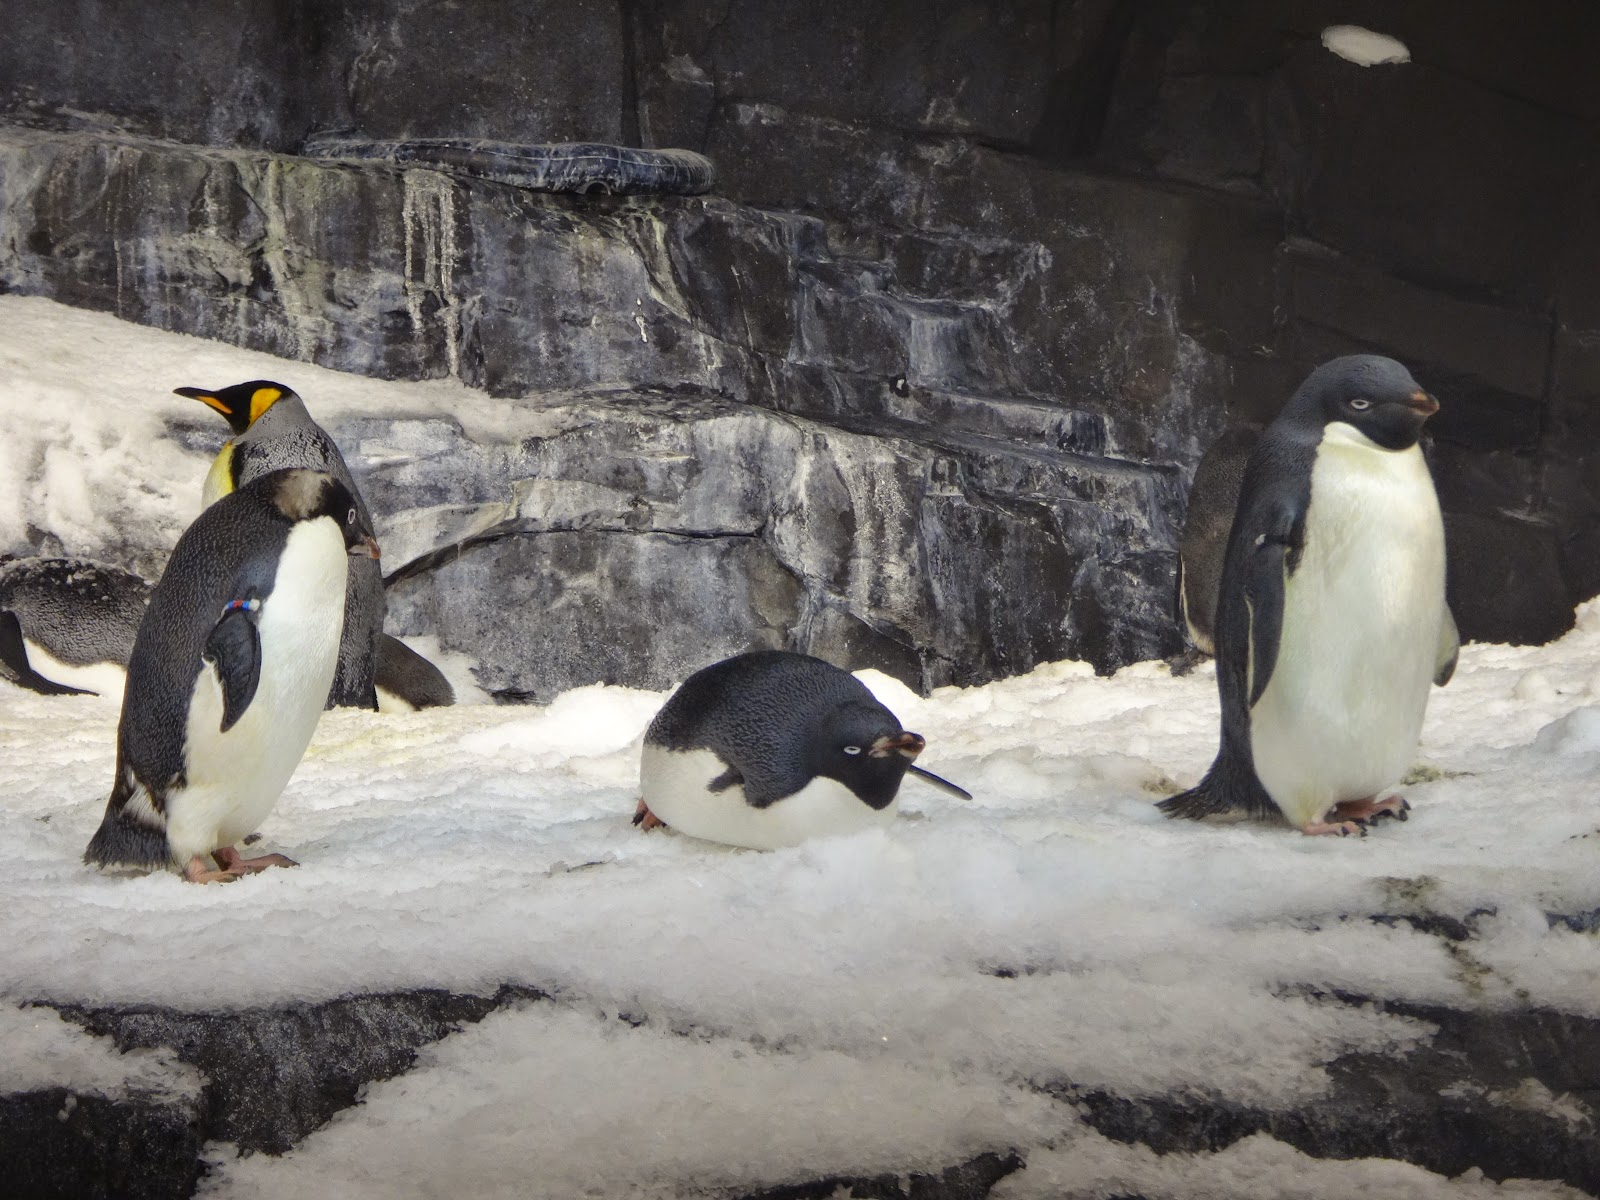 pinguins - penguin encounter - parque sea world - orlando, florida